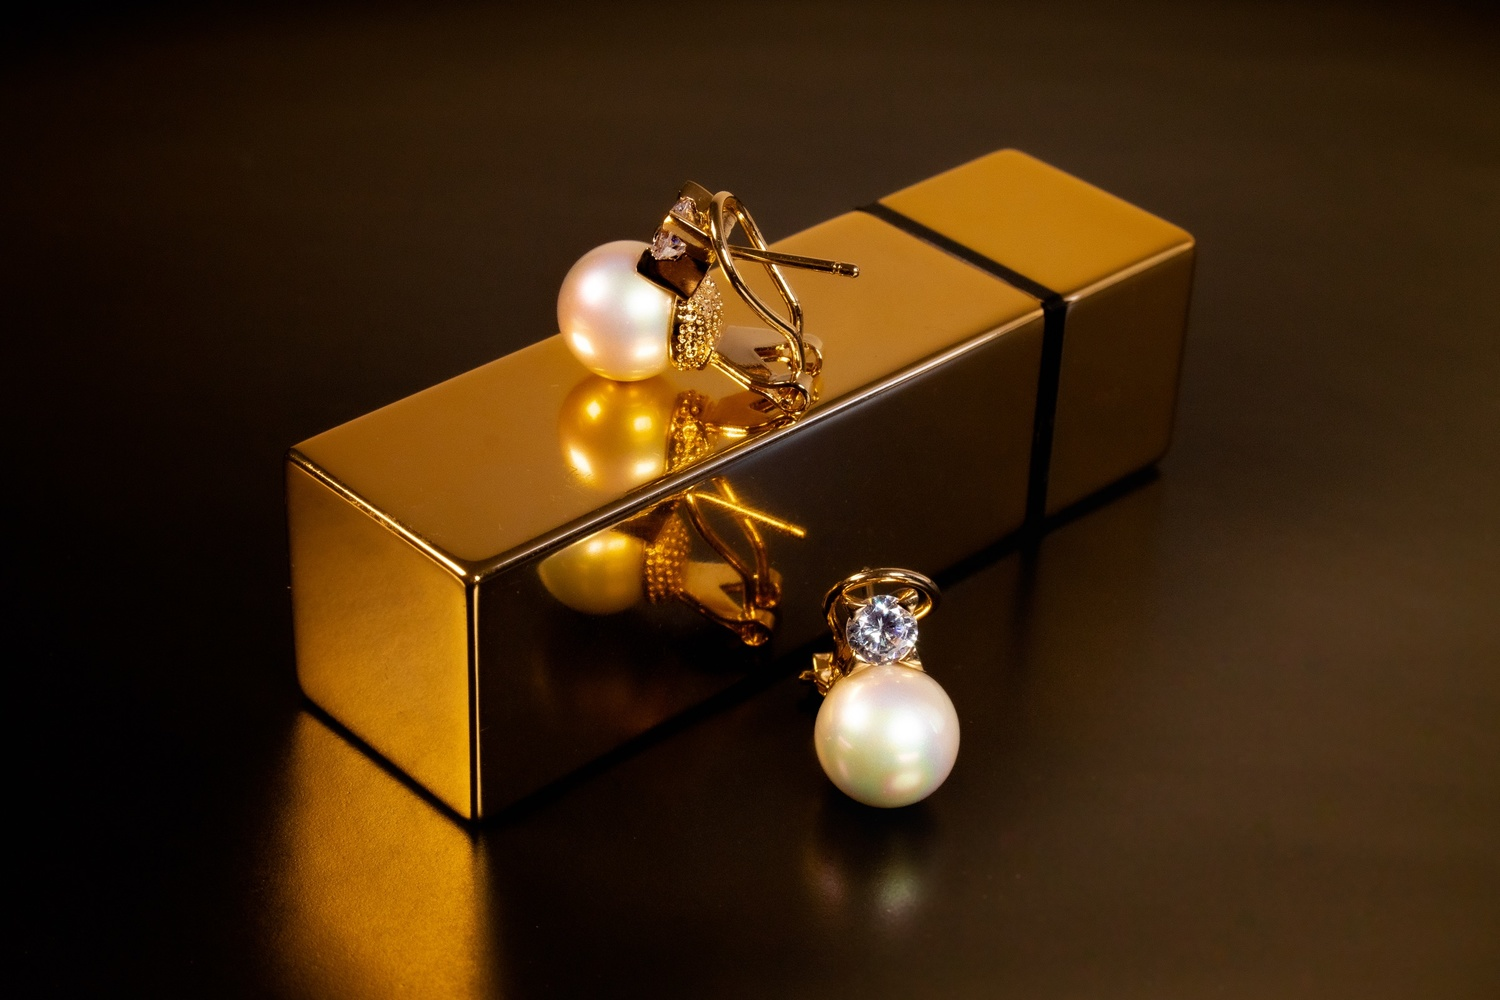 Pearl and Gold Earrings macro photography fashion commercial by Gener Vazquez